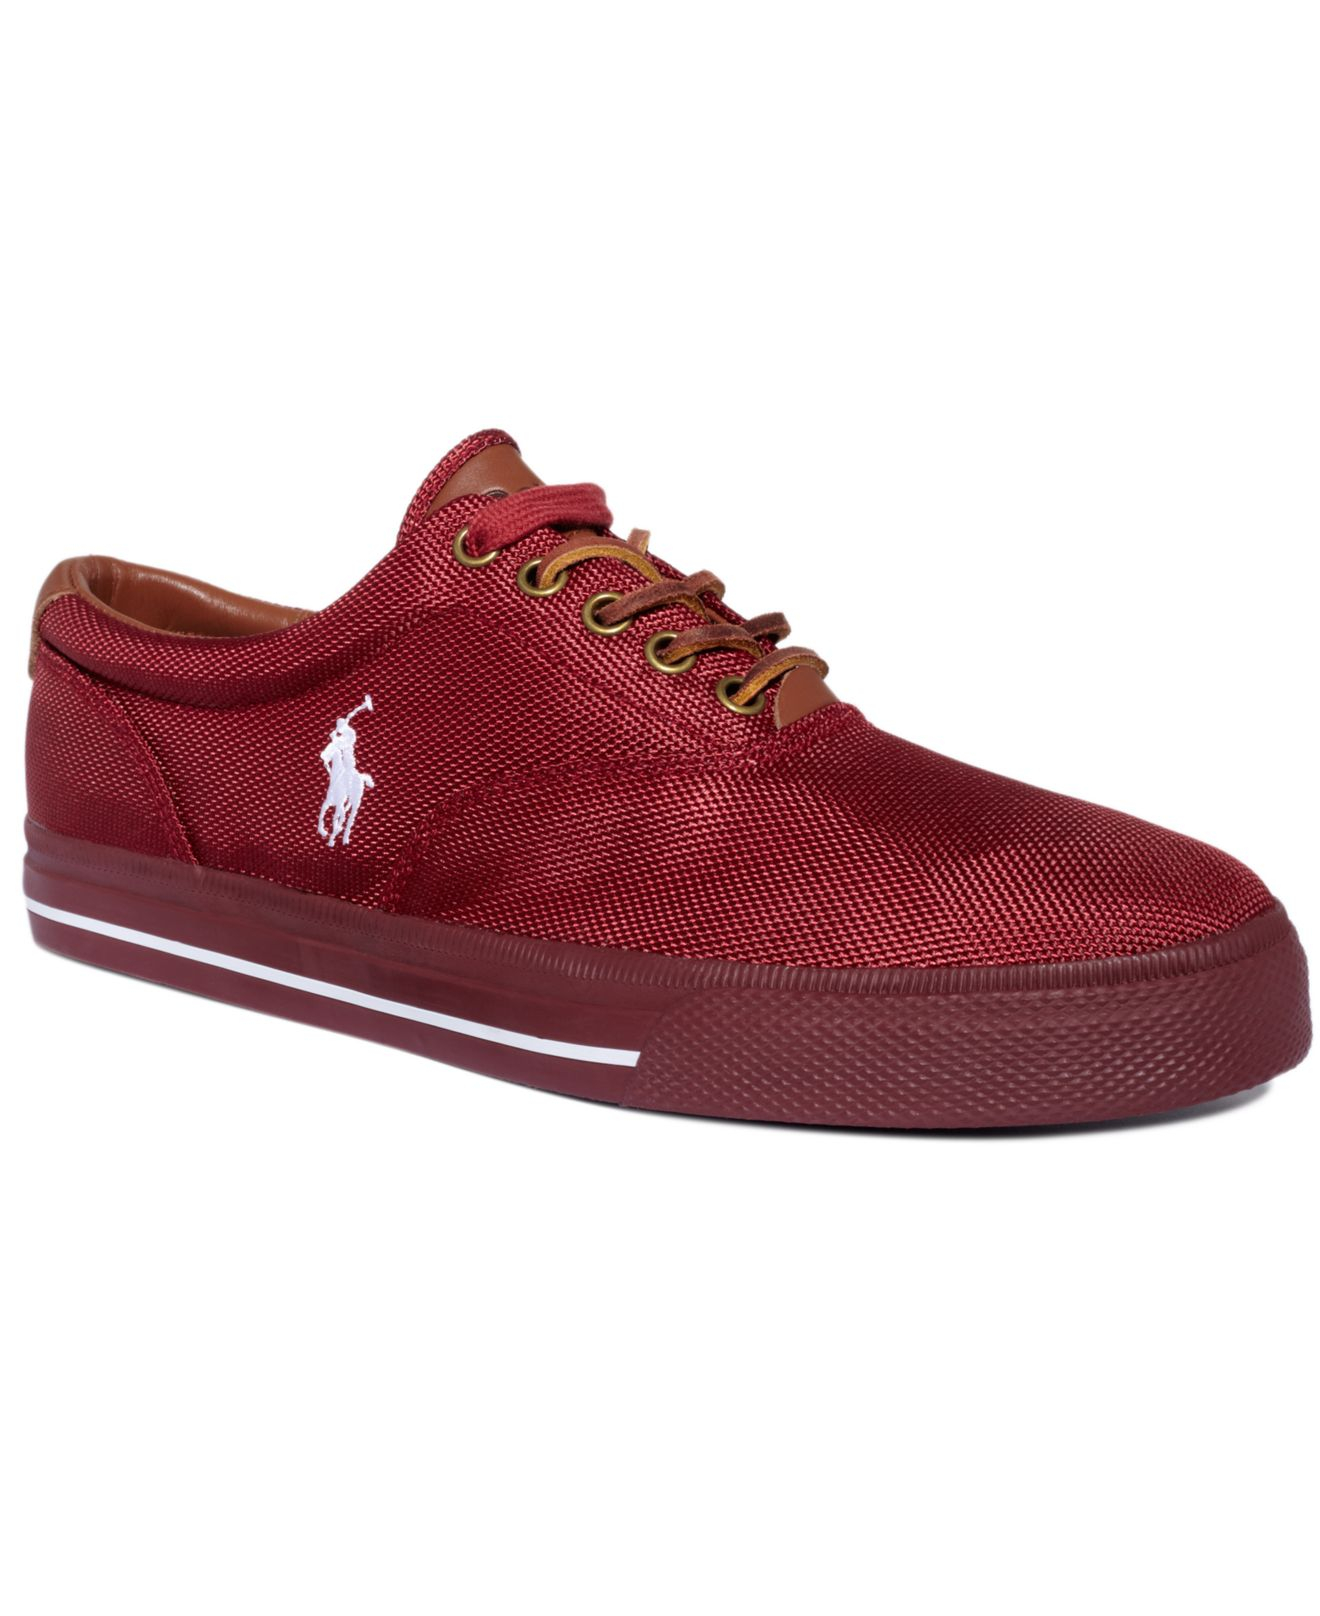 polo ralph lauren vaughn nylon sneakers in red for men lyst. Black Bedroom Furniture Sets. Home Design Ideas